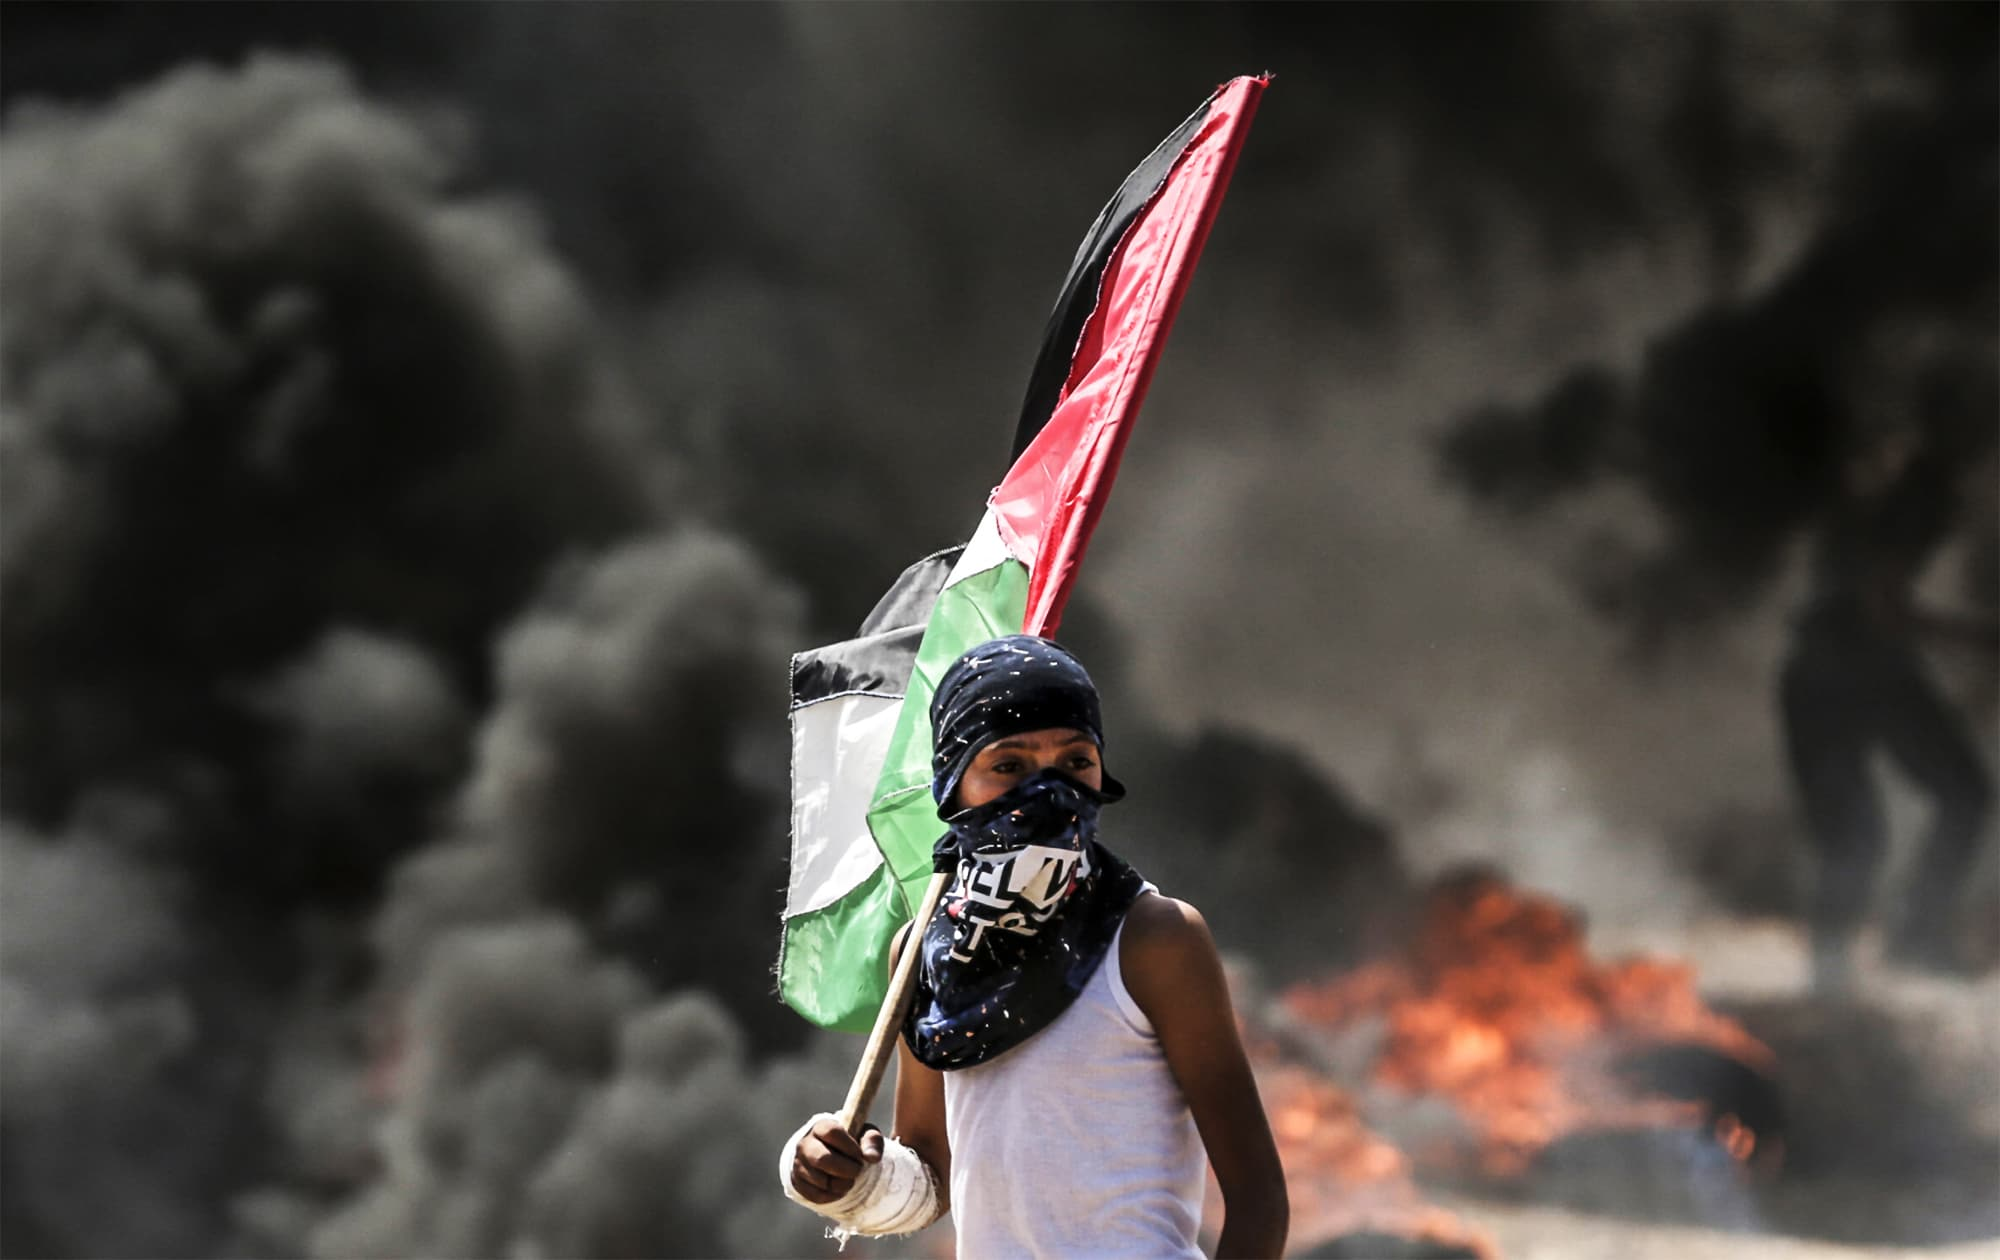 A Palestinian boy holding his national flag looks at clashes with Israeli security forces near the border between the Gaza Strip and Israel east of Gaza City on May 14, 2018. — AFP